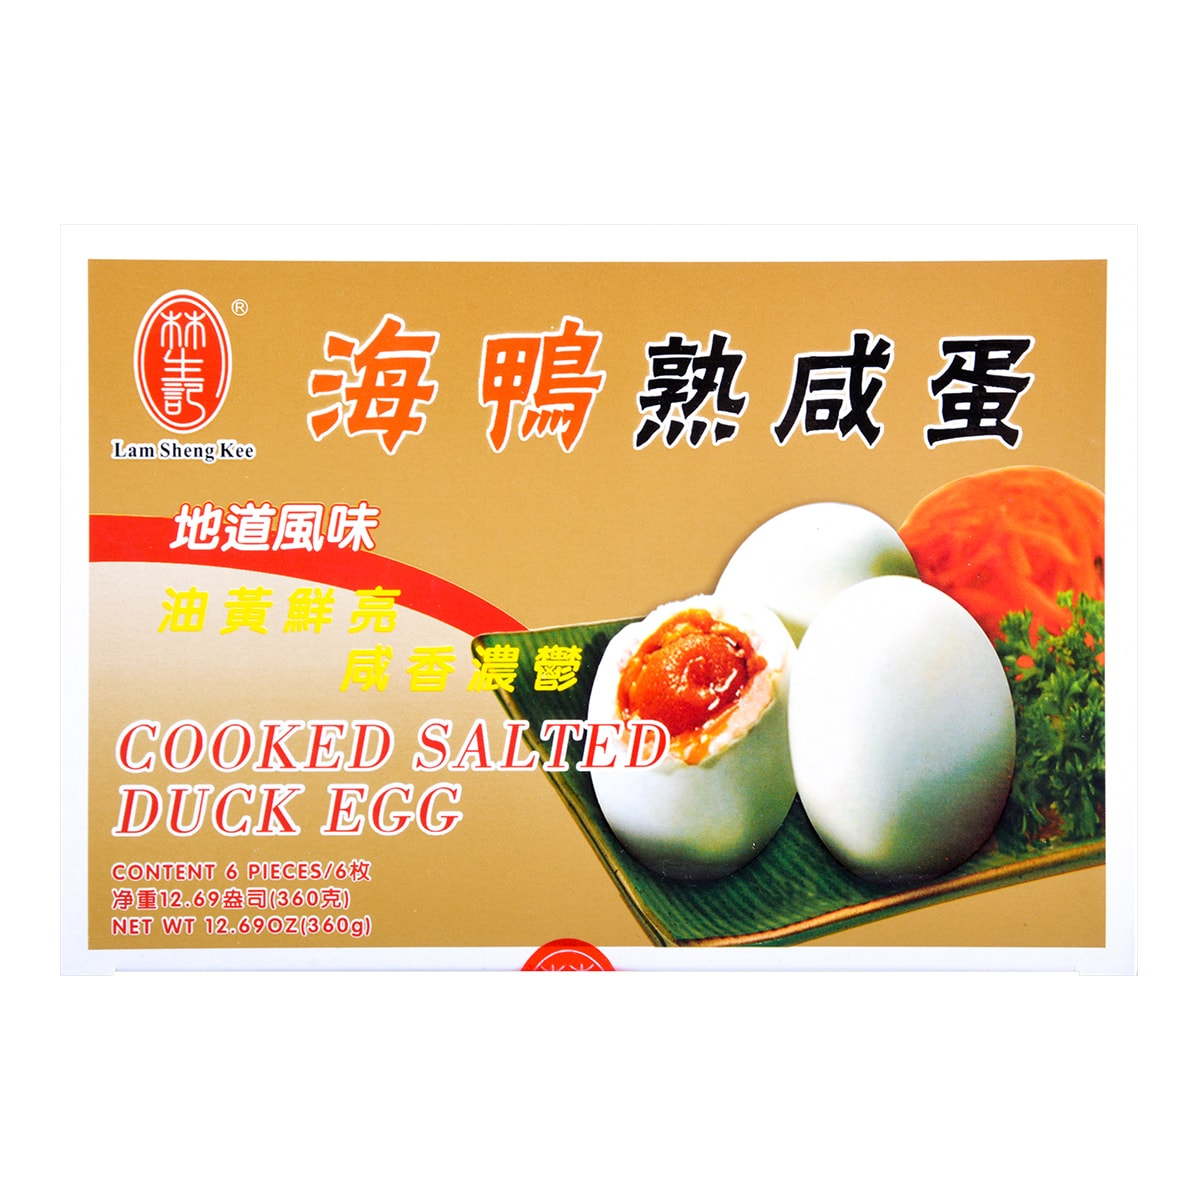 LAMSHENGKEE Cooked Salted Duck Egg 6pc